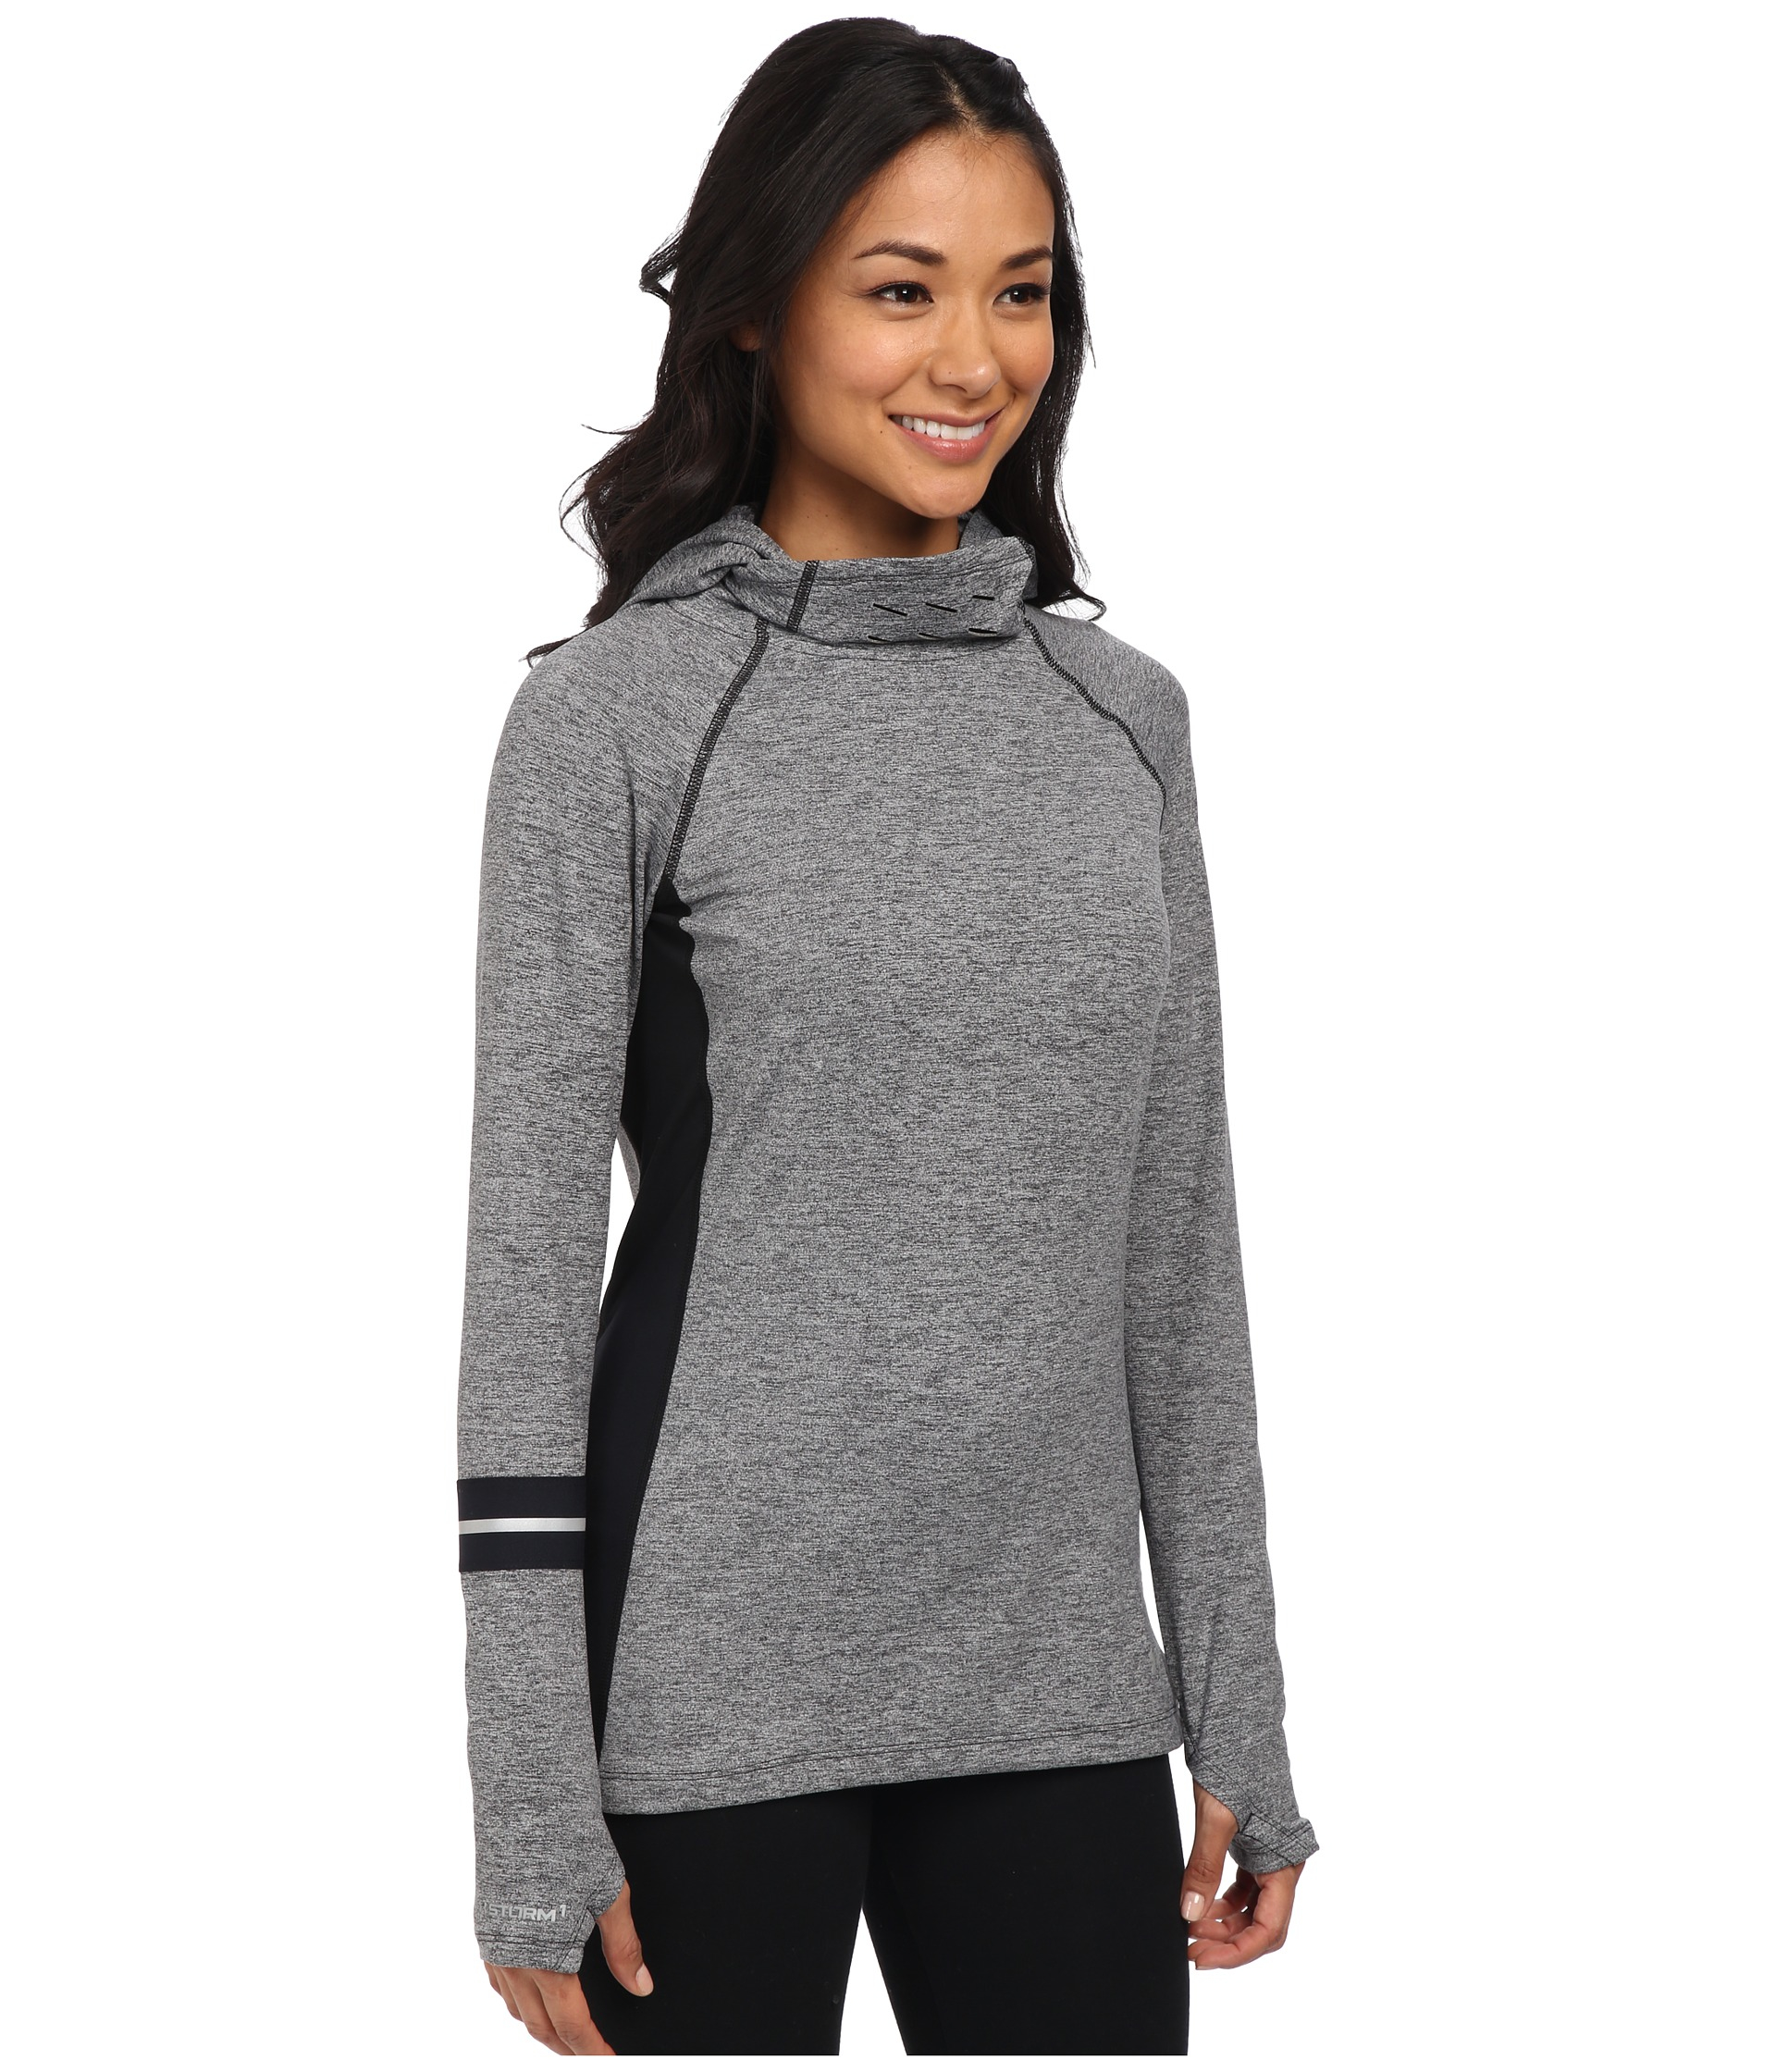 a54c76f9b4d3 Lyst - Under Armour Ua Storm Layered Up Hoodie in Black